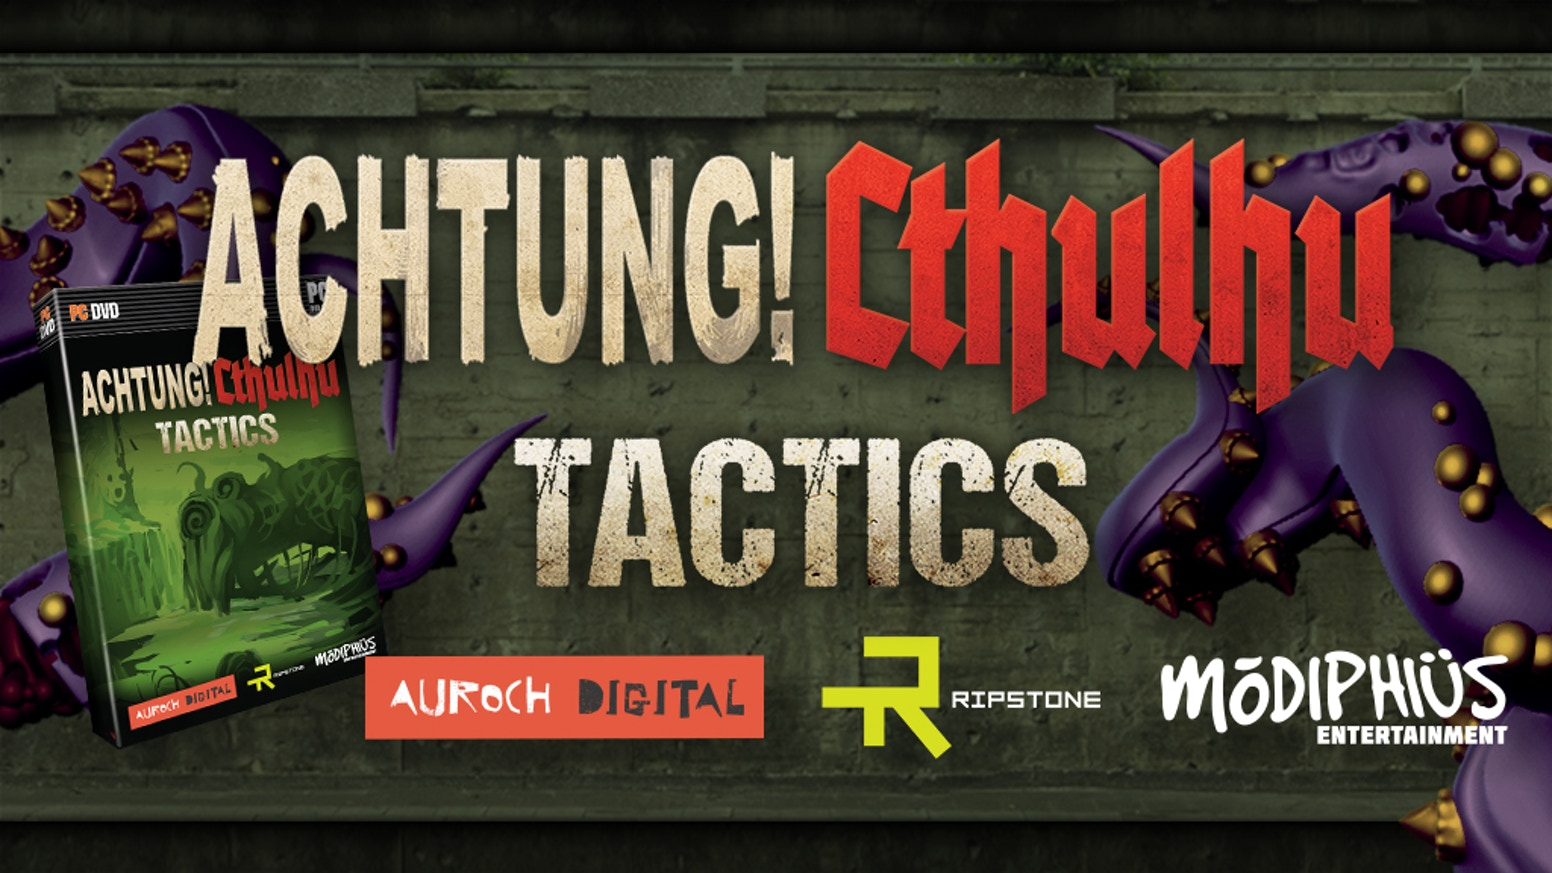 Achtung! Cthulhu Tactics - Action/RPG Video Game by Auroch Digital